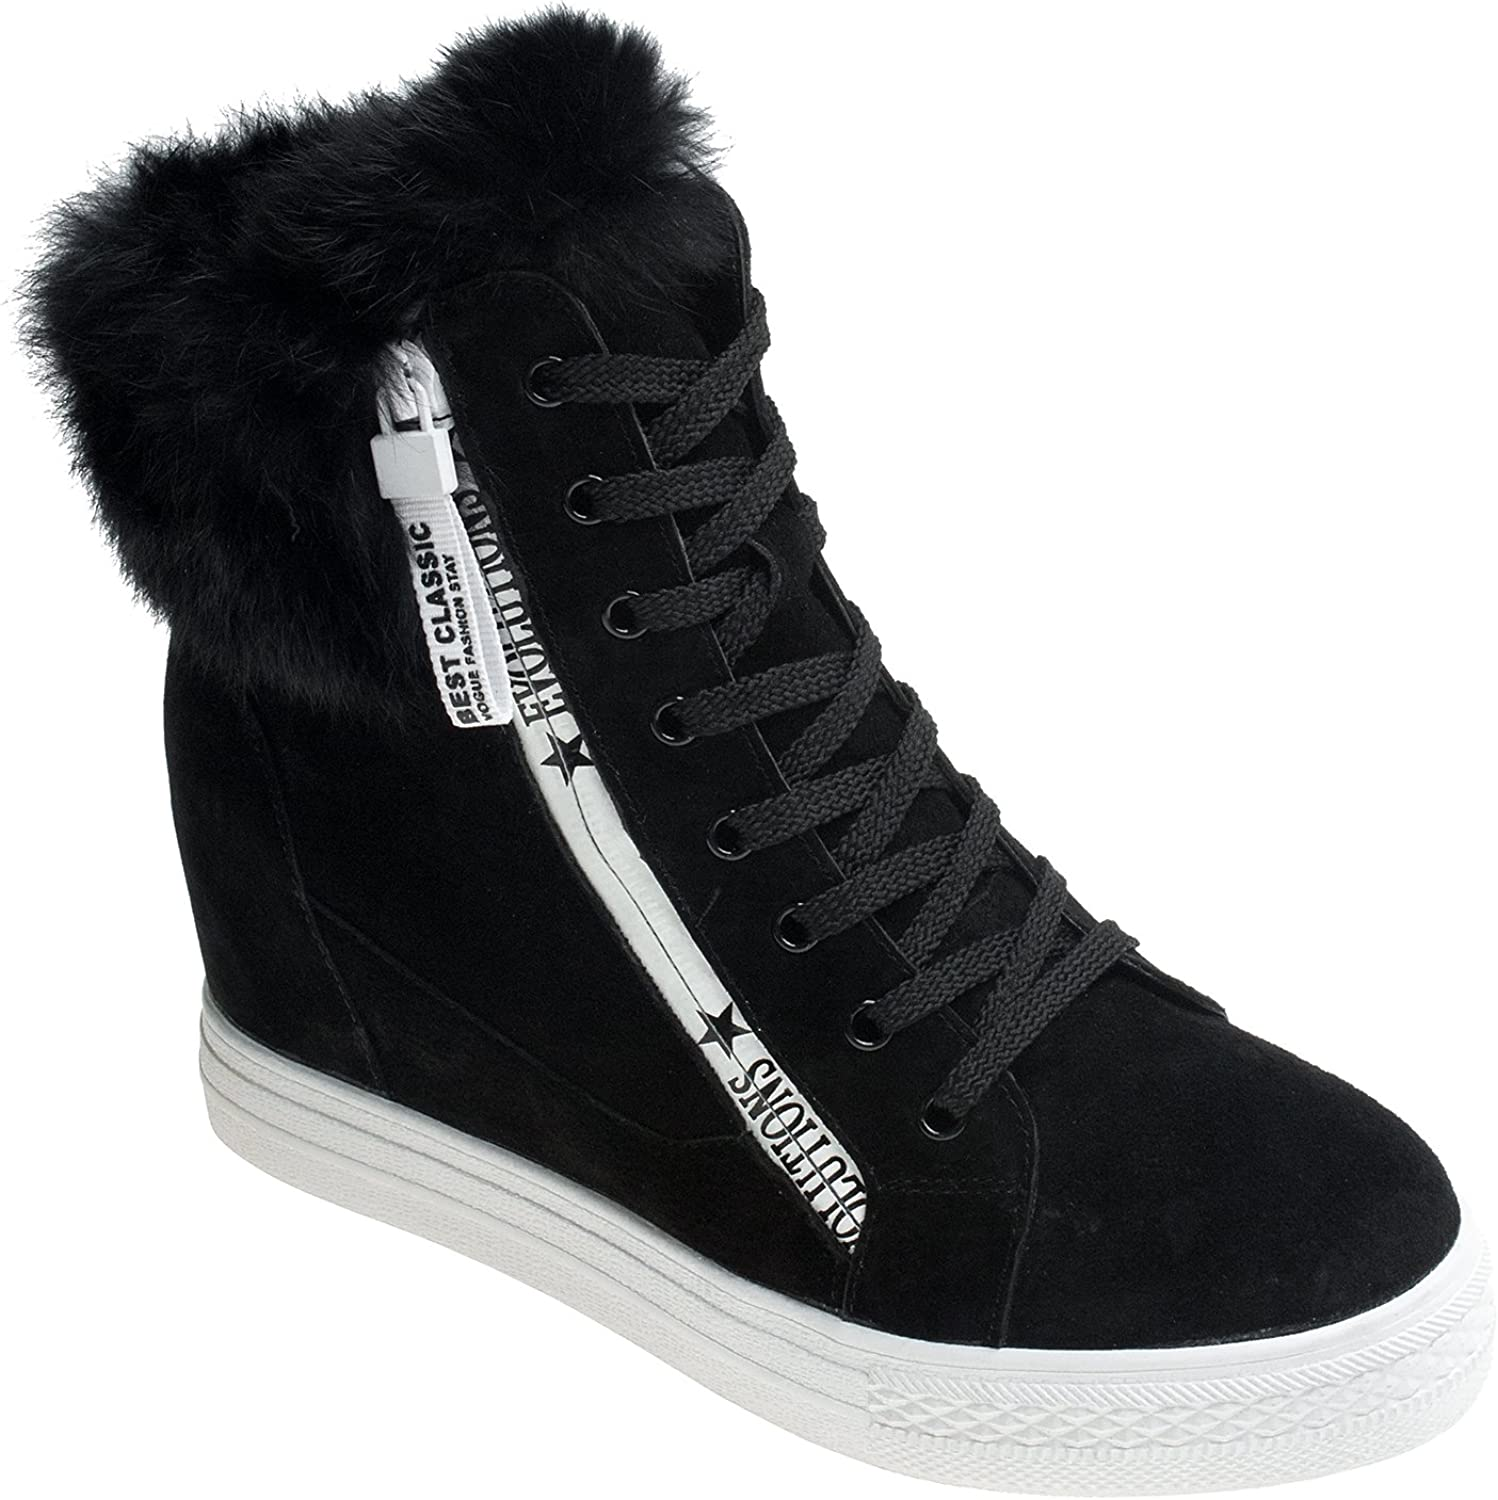 AnnaKastle Womens Fur Trimmed Suede Leather High Top Fashion Zip Sneaker Boots